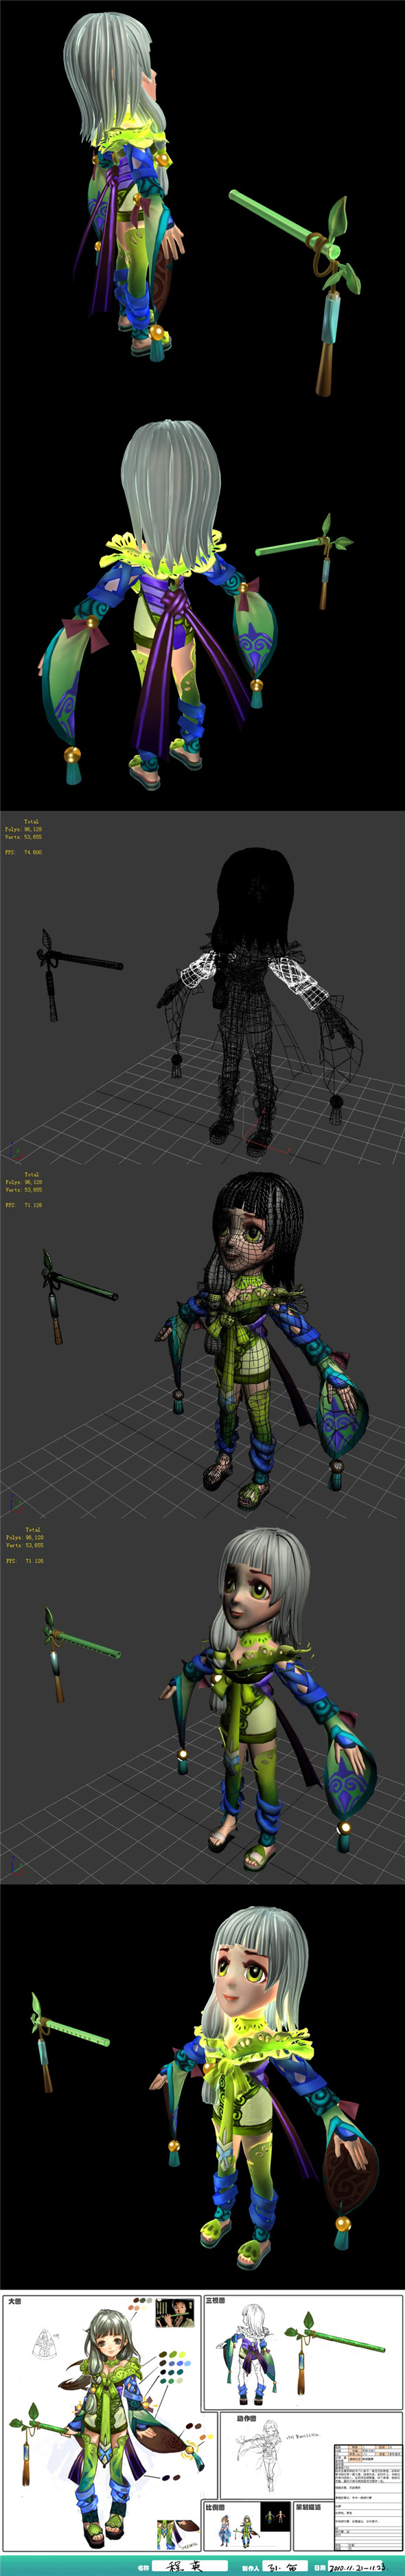 Game characters - Cheng Ying - 3DOcean Item for Sale